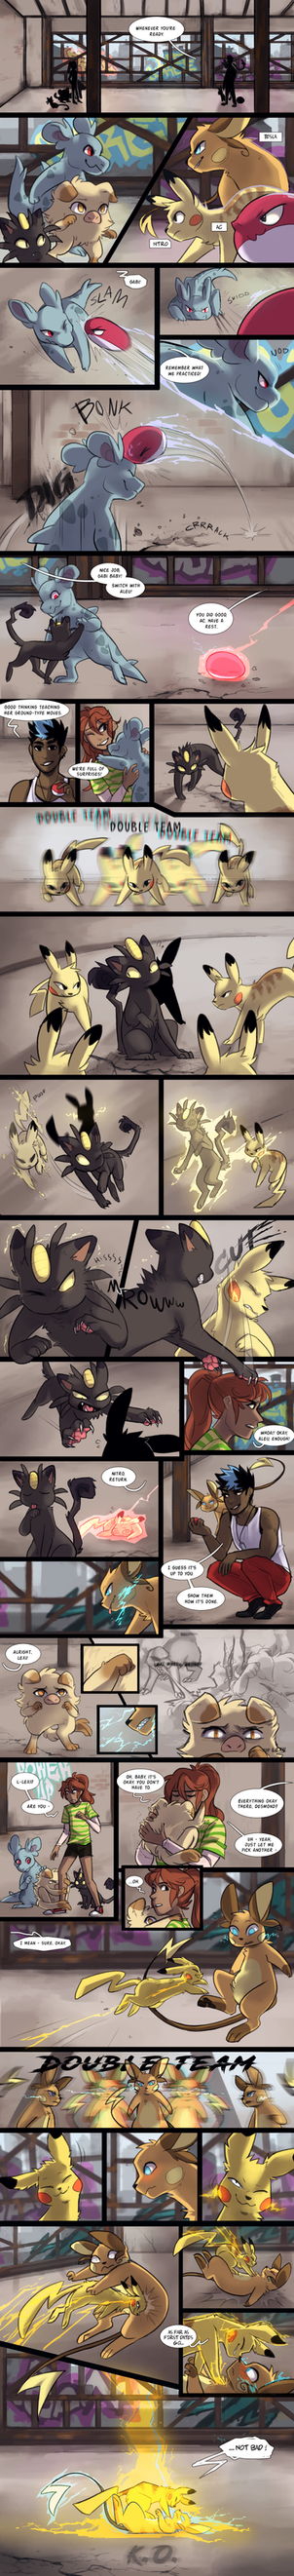 The Pokedex Project part 58 by Effsnares